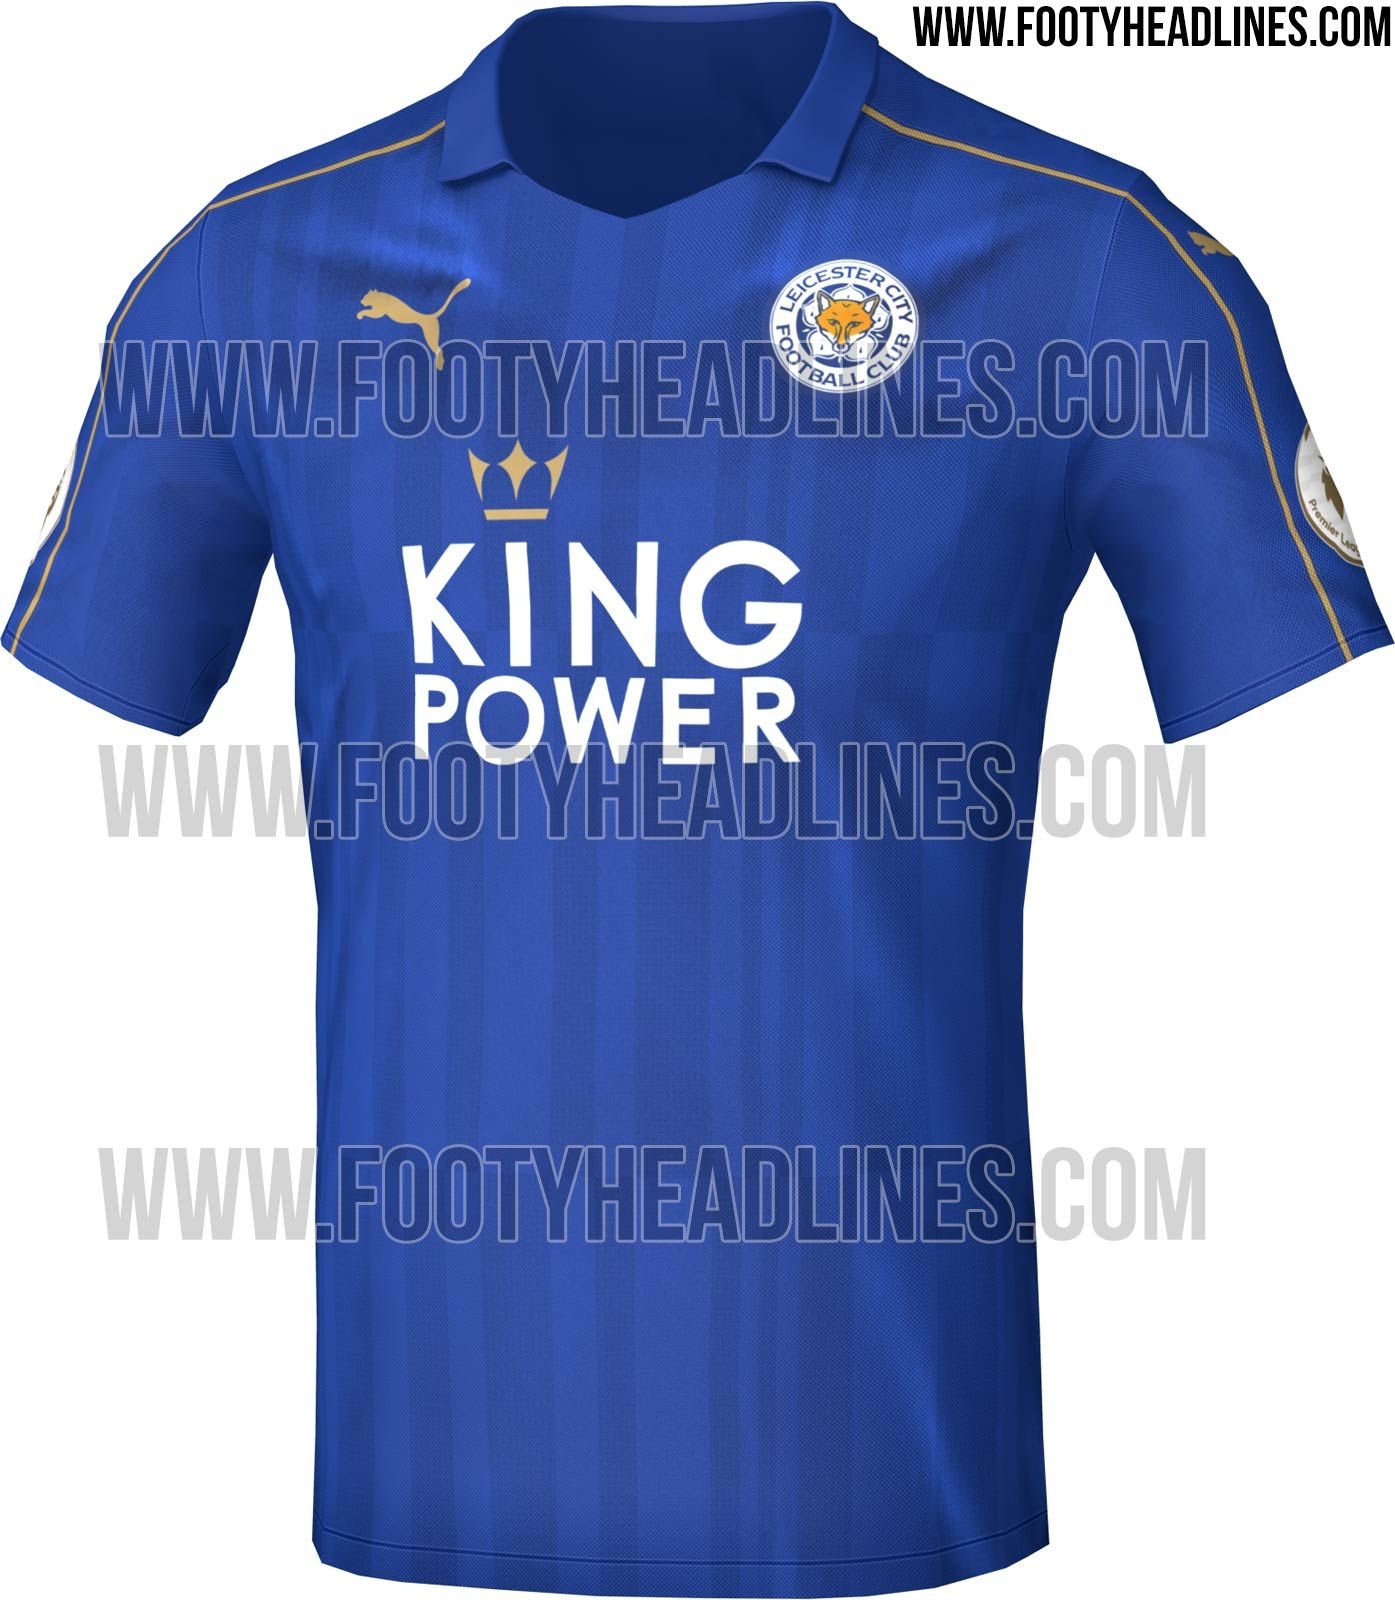 Leicester City 16 17 Home Kit Released Leicester City 20er Fussball